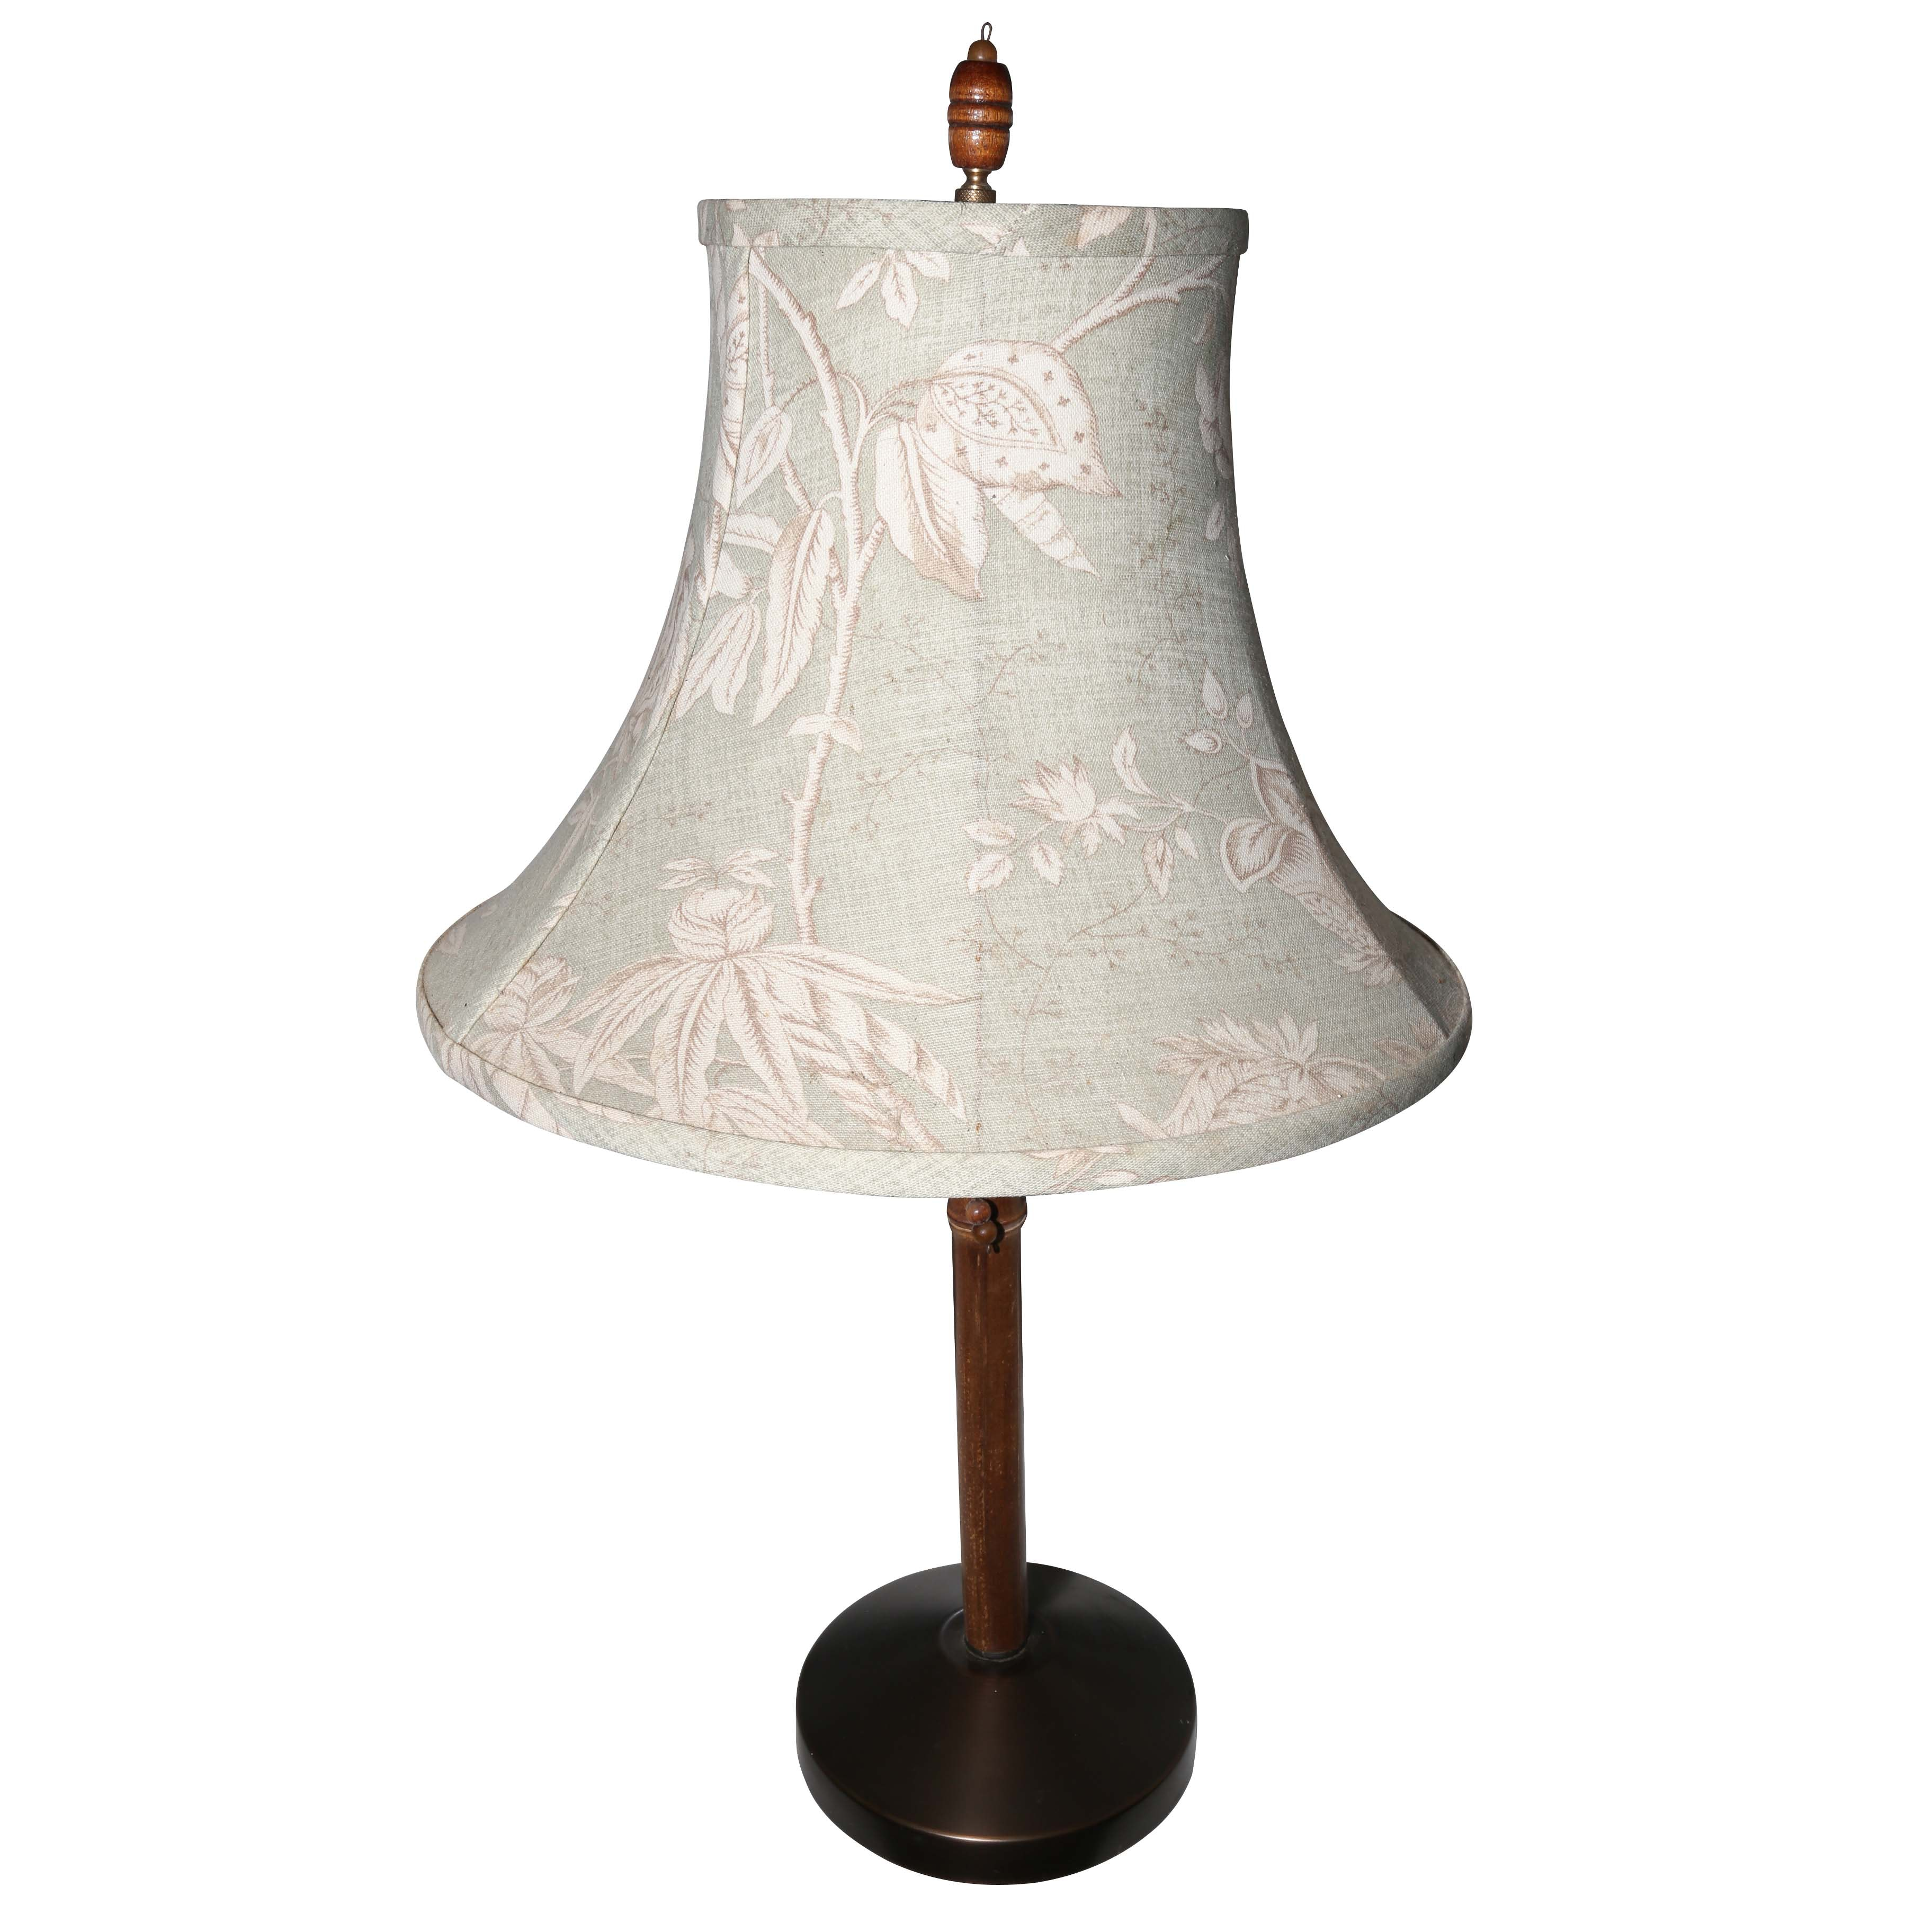 Wood Table Lamp With Fabric Shade